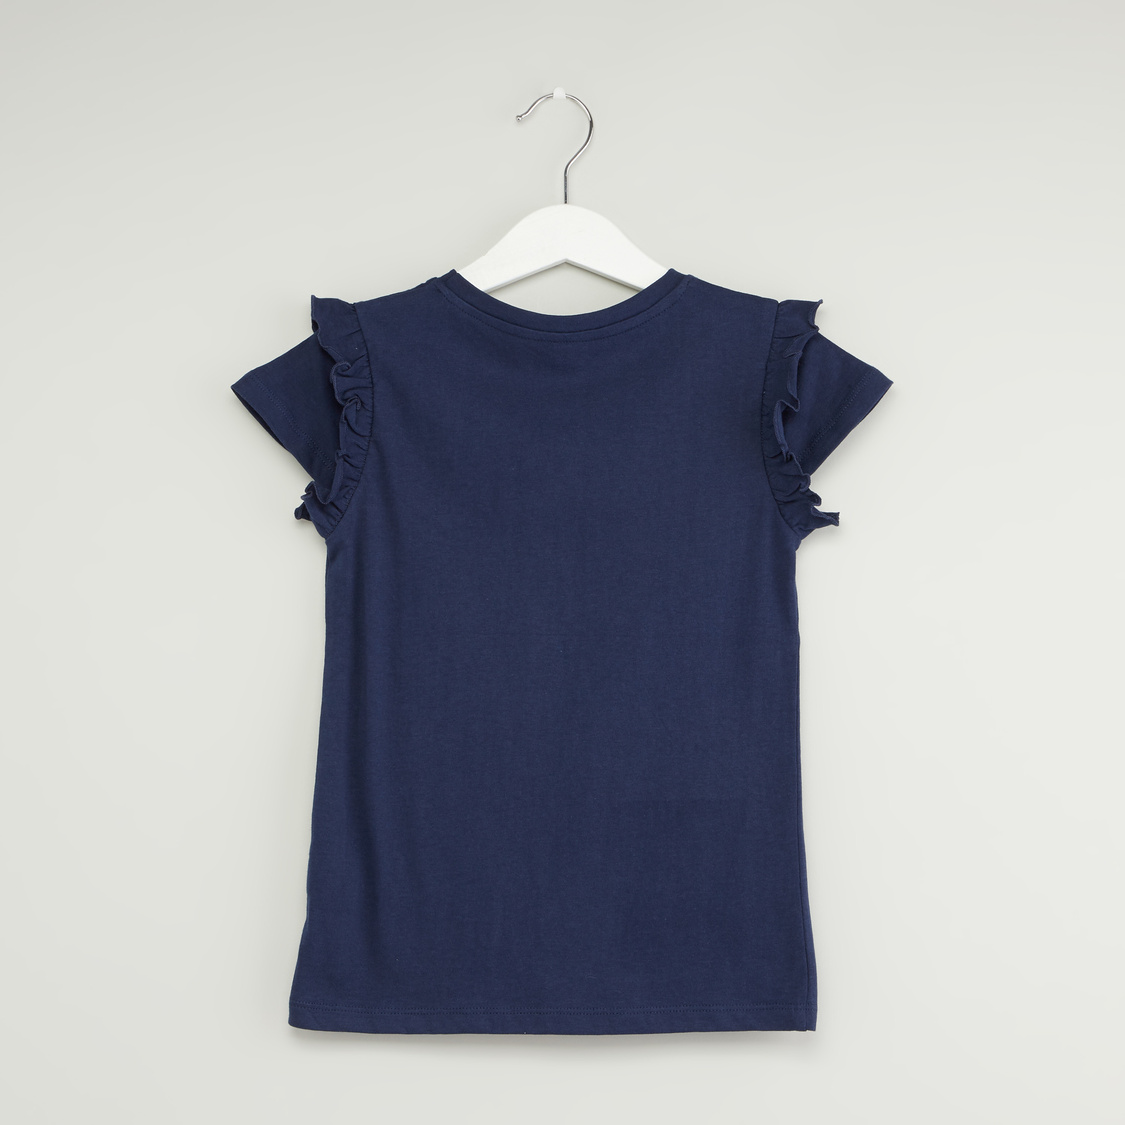 Graphic Print Round Neck T-shirt with Cap Sleeves and Ruffle Detail